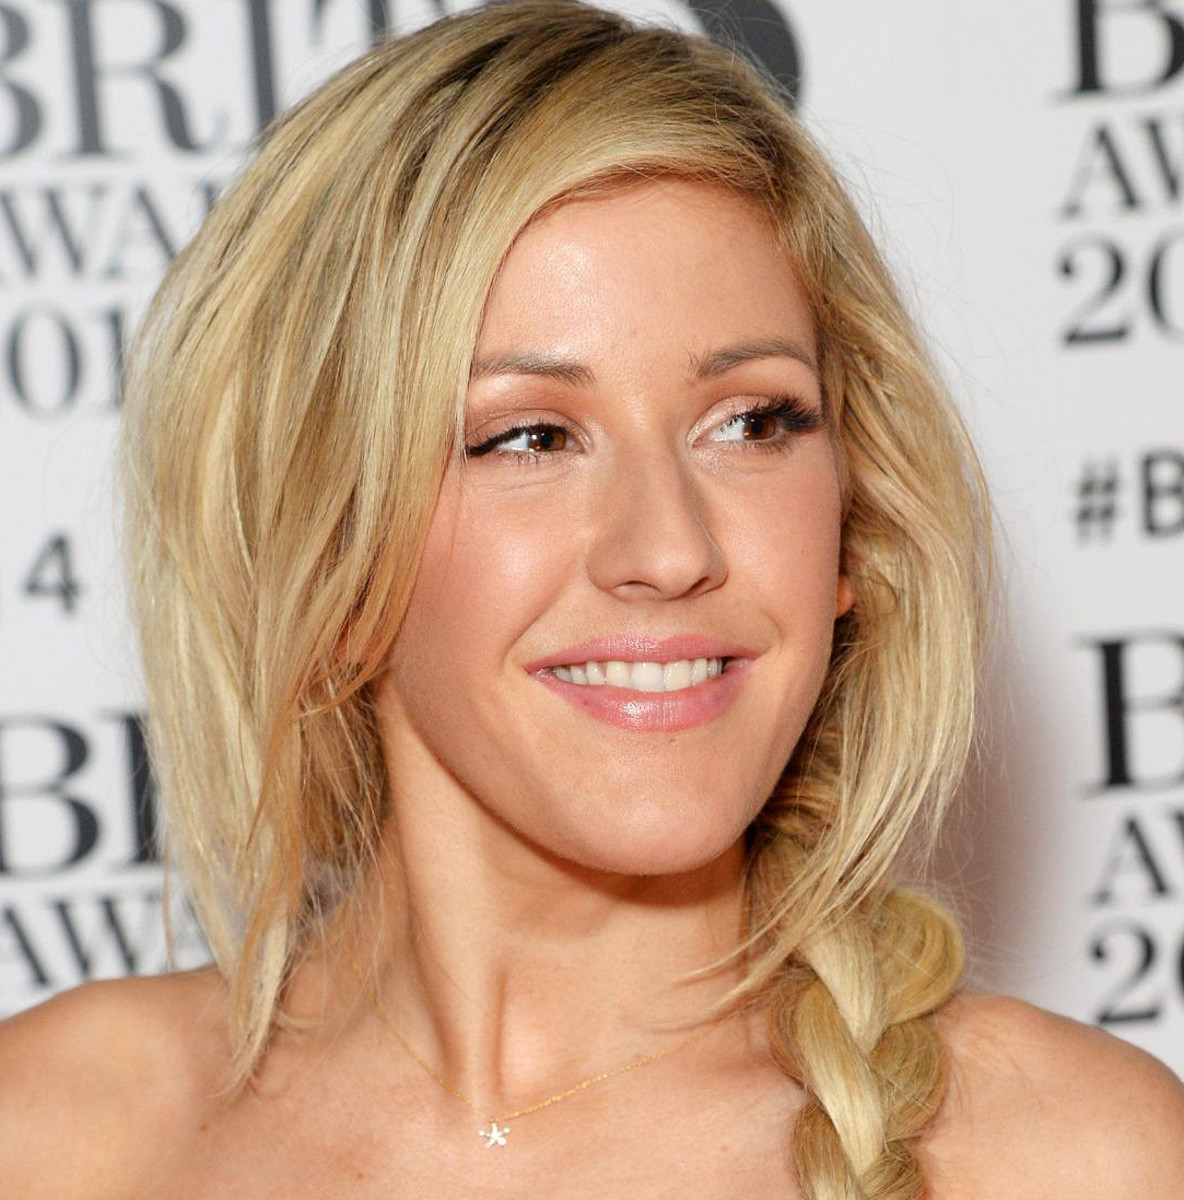 mac ellie goulding_ellie at the brit awards 2014